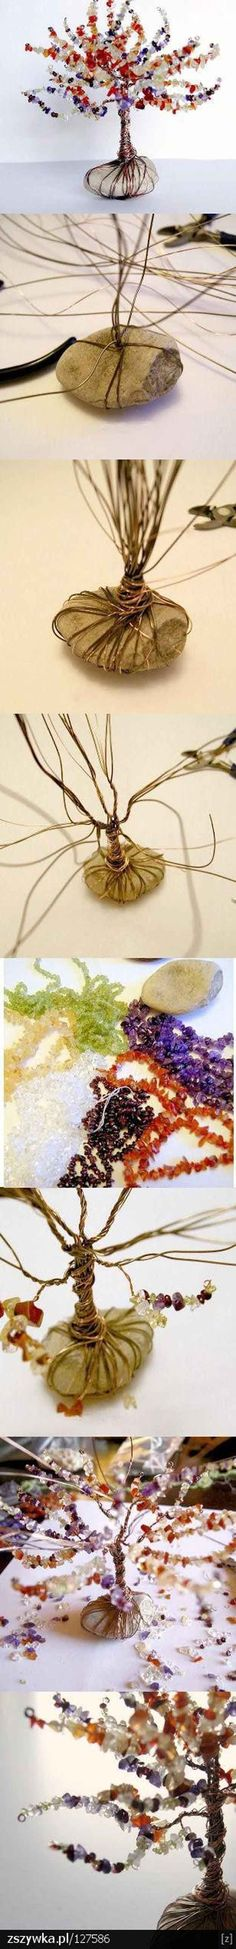 Fun DIY Tree of LIfe Decoration and Ideas | DIY Wire Tree by DIY Ready at http://diyready.com/12-diy-tree-of-life-ideas/